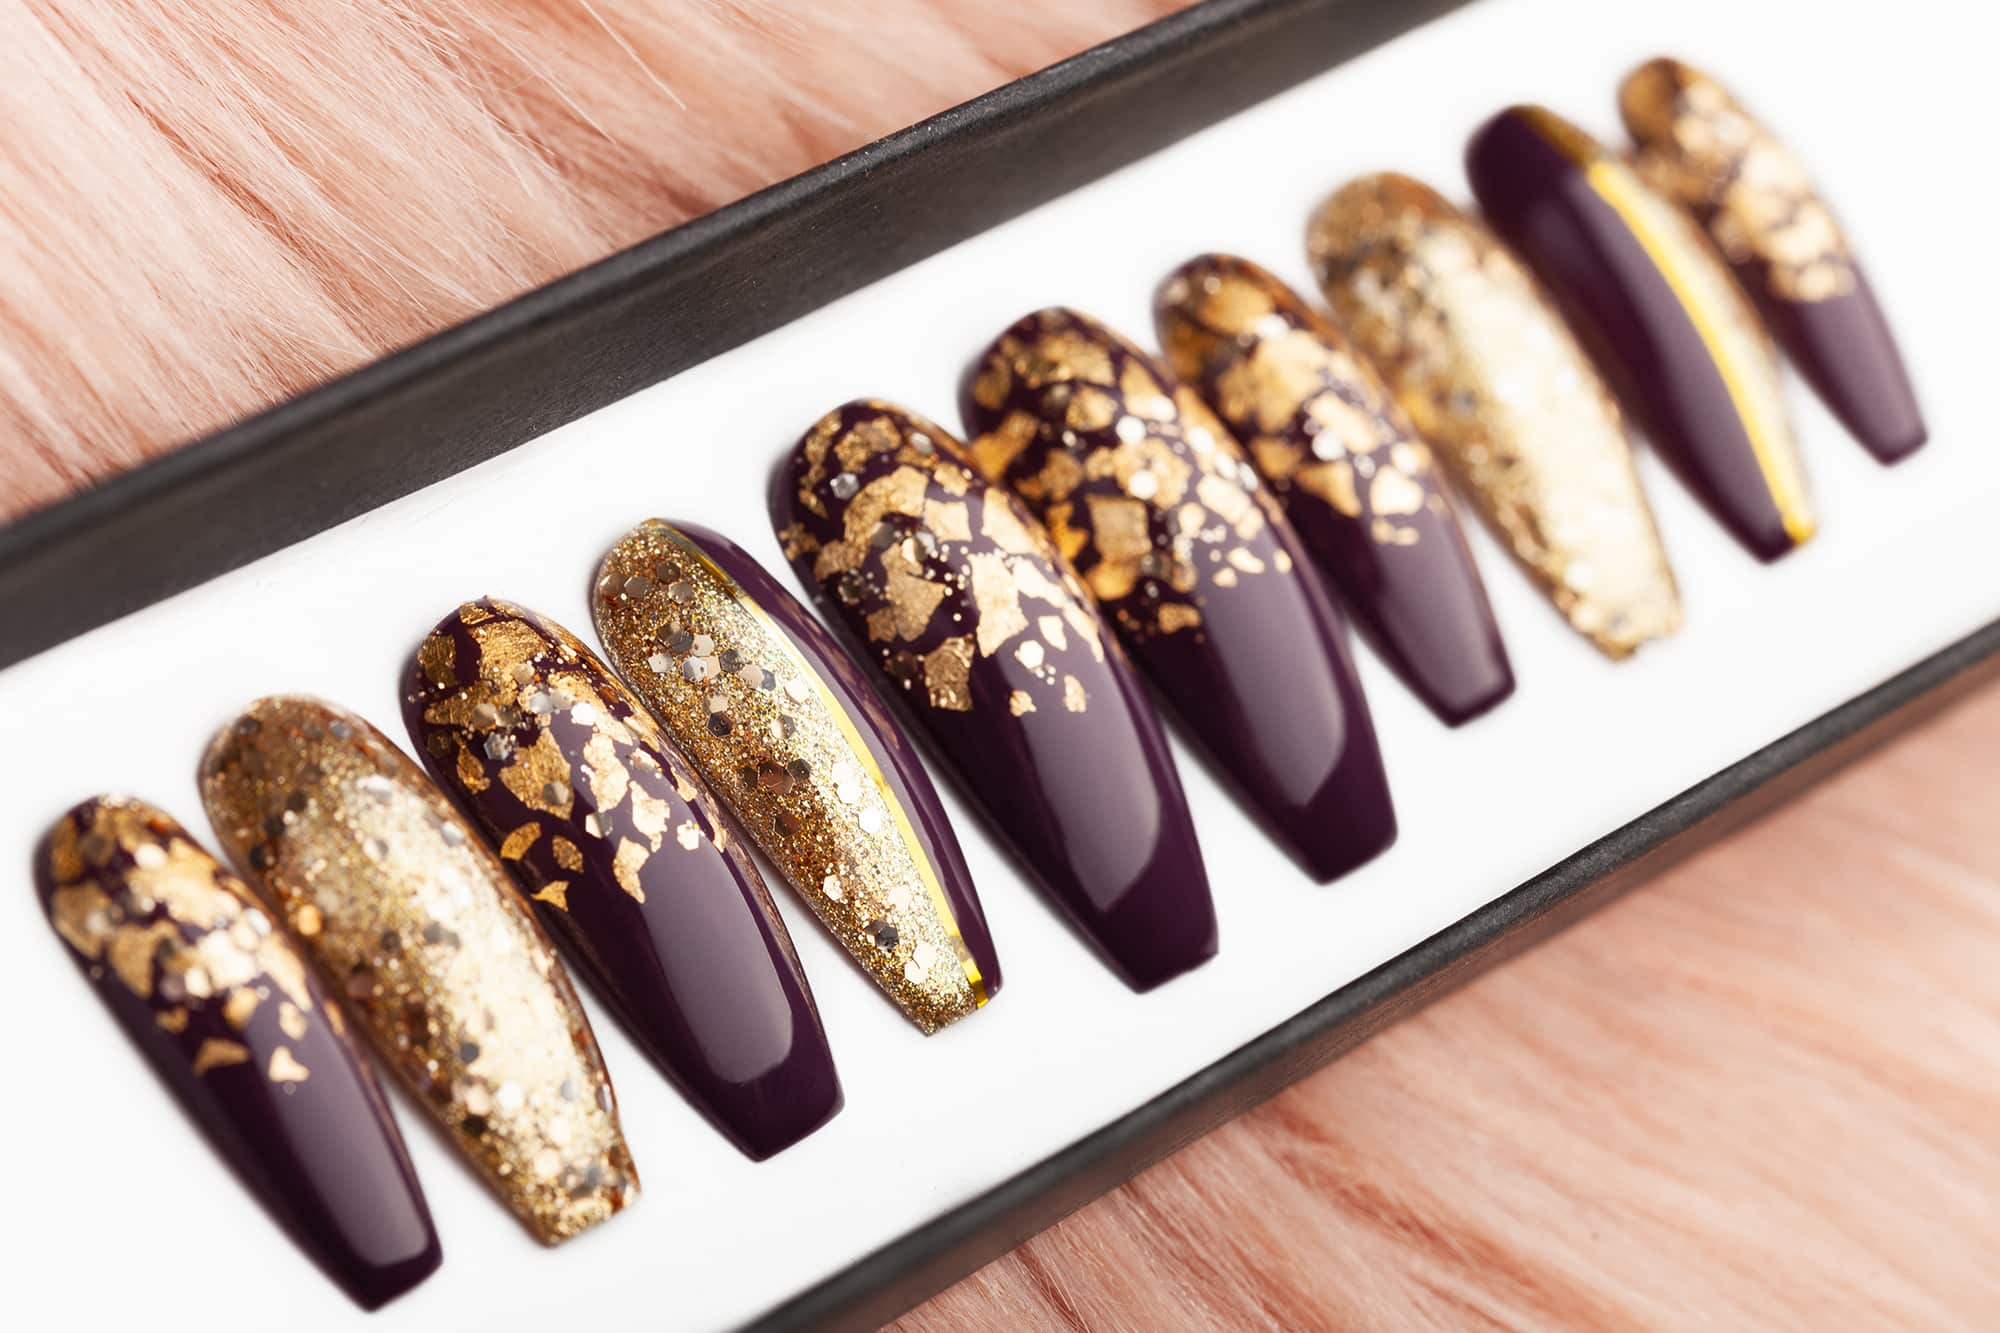 purple nails with golden flakes